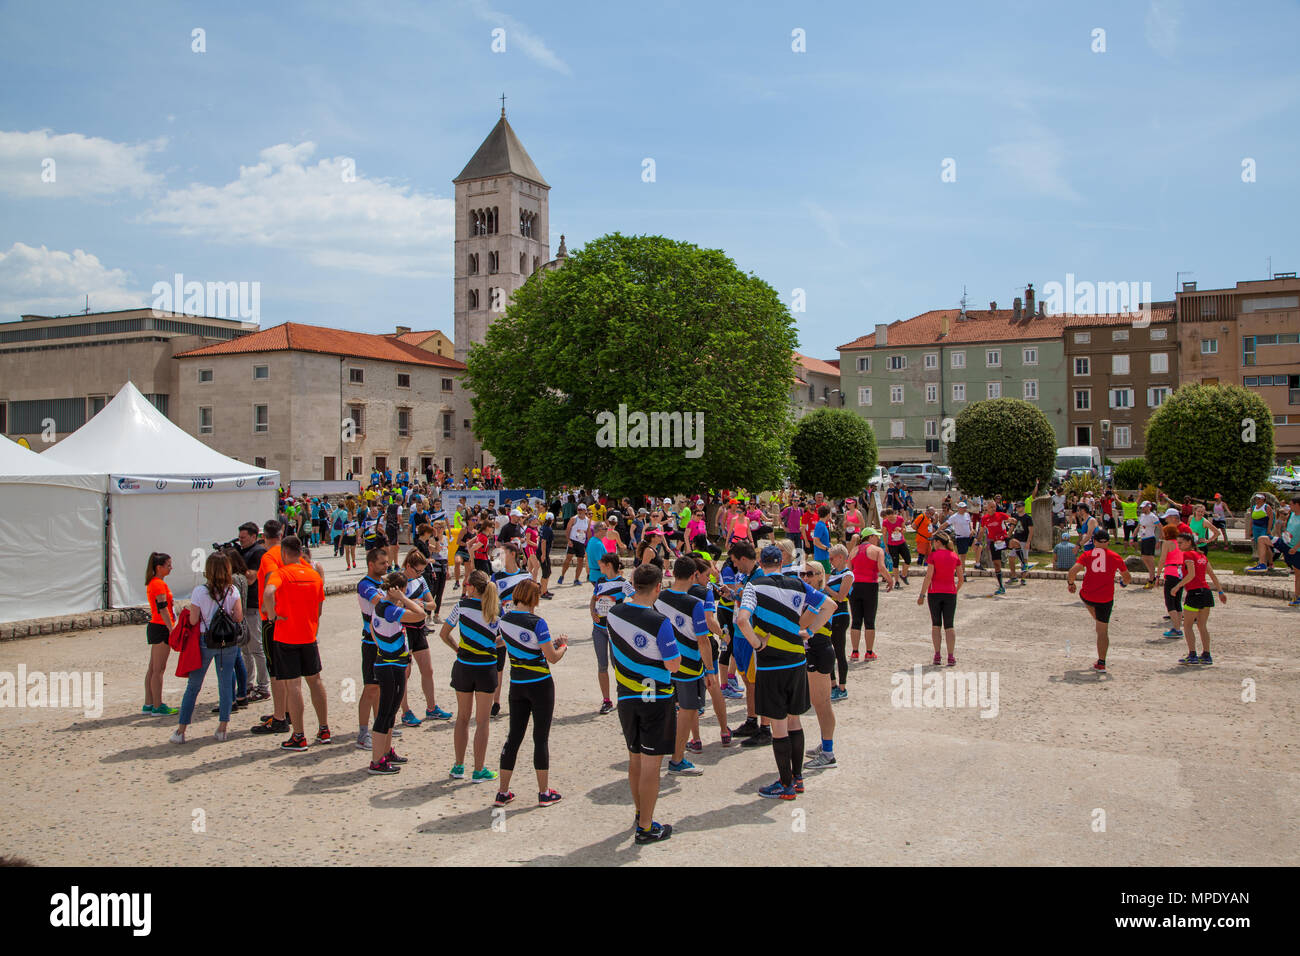 Runners athletes and competitors prepare and warm up for The Croatian staging of the global race, wings for life world run charity race in Zadar - Stock Image